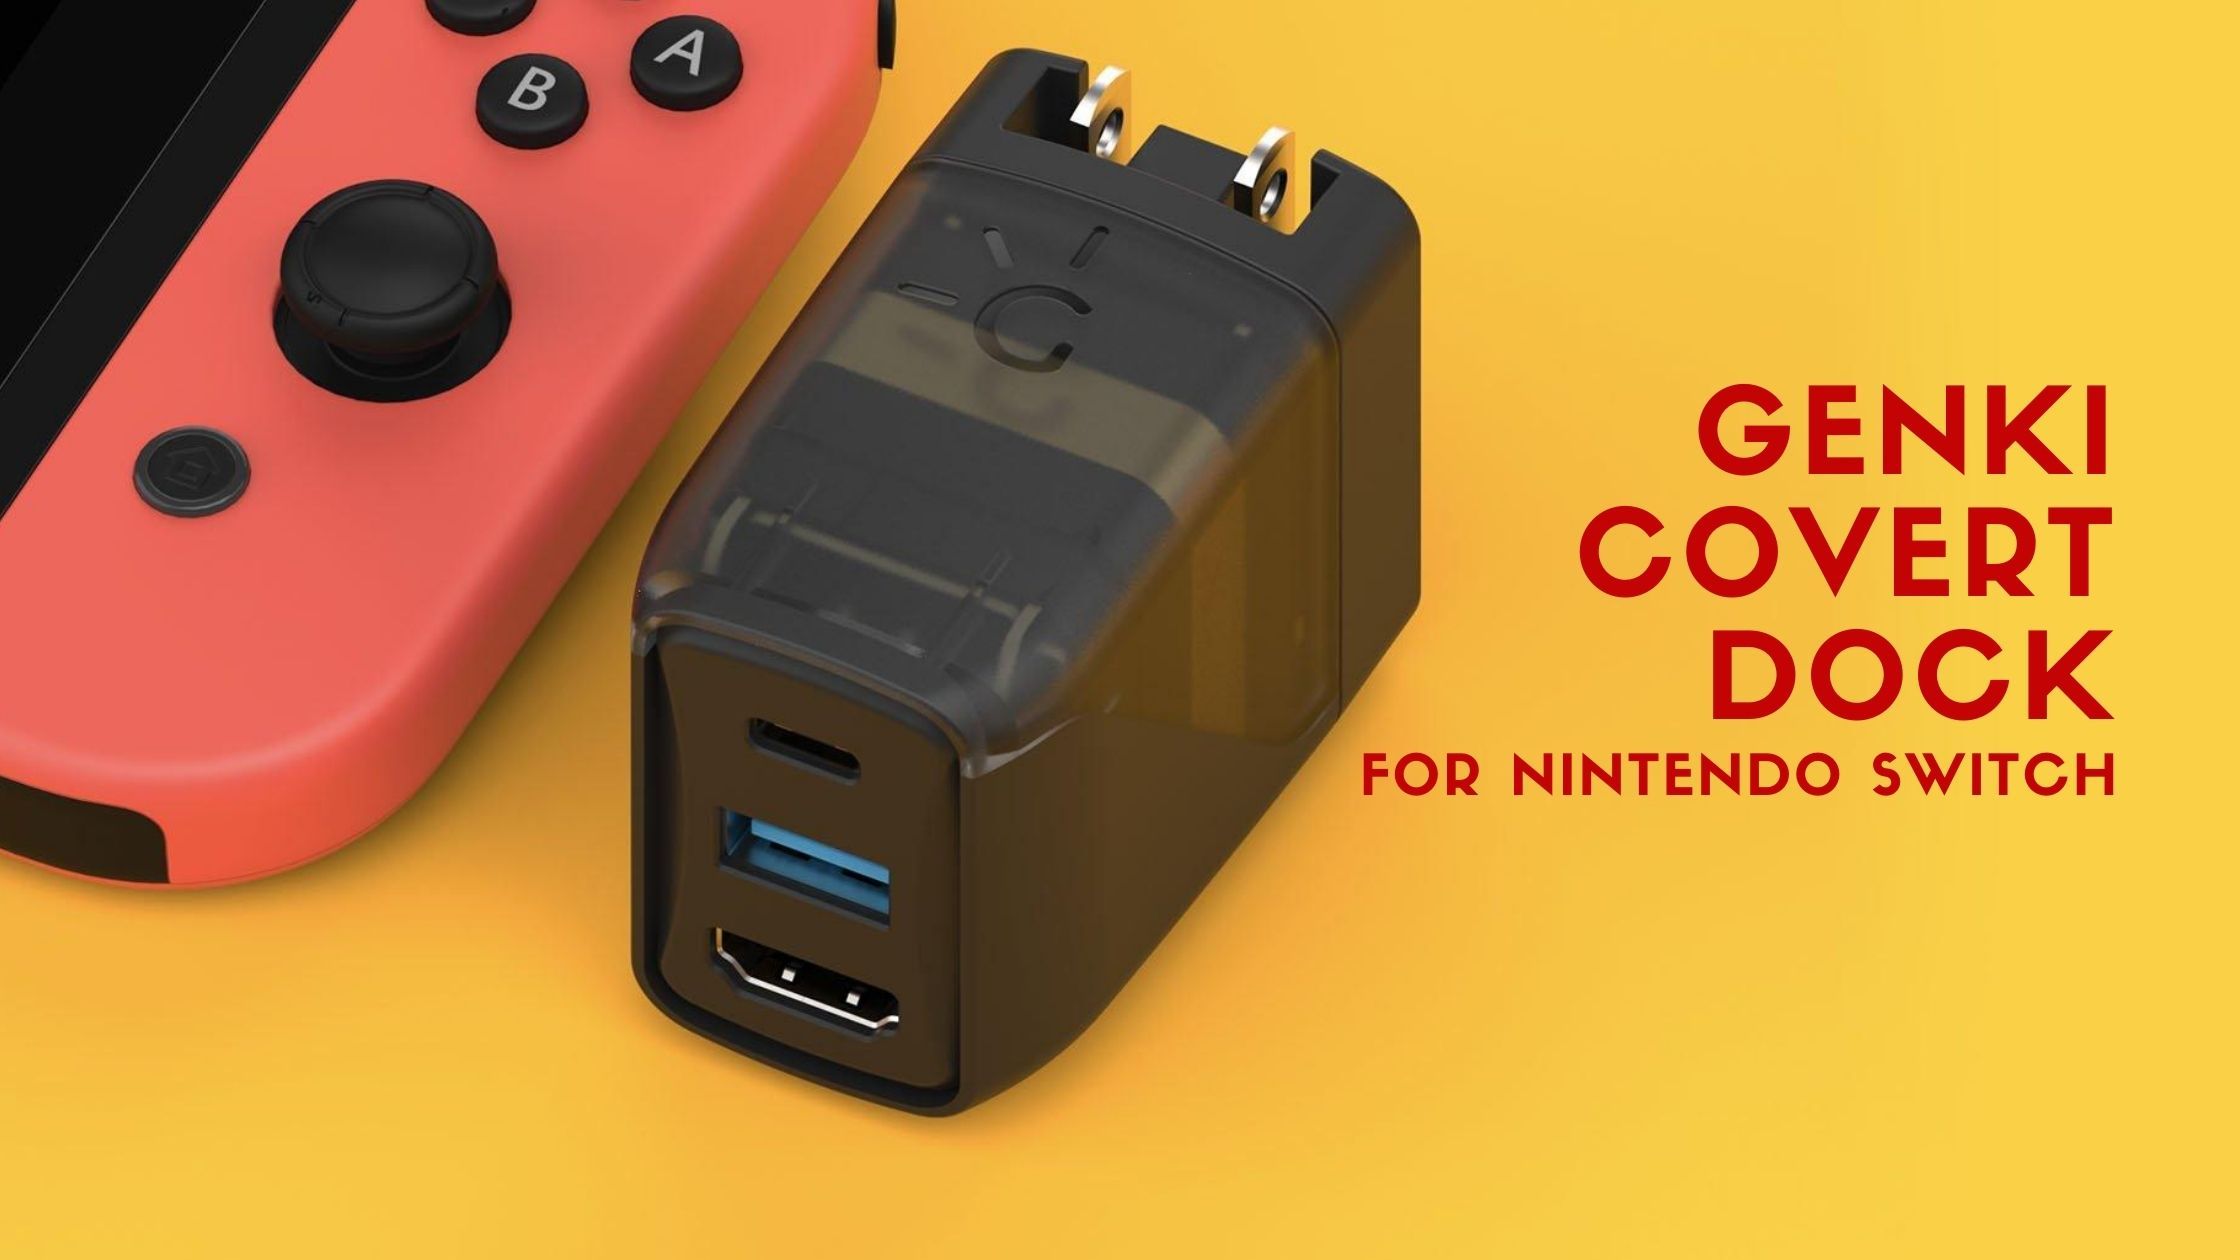 Genki Covert Dock for Nintendo Switch Review